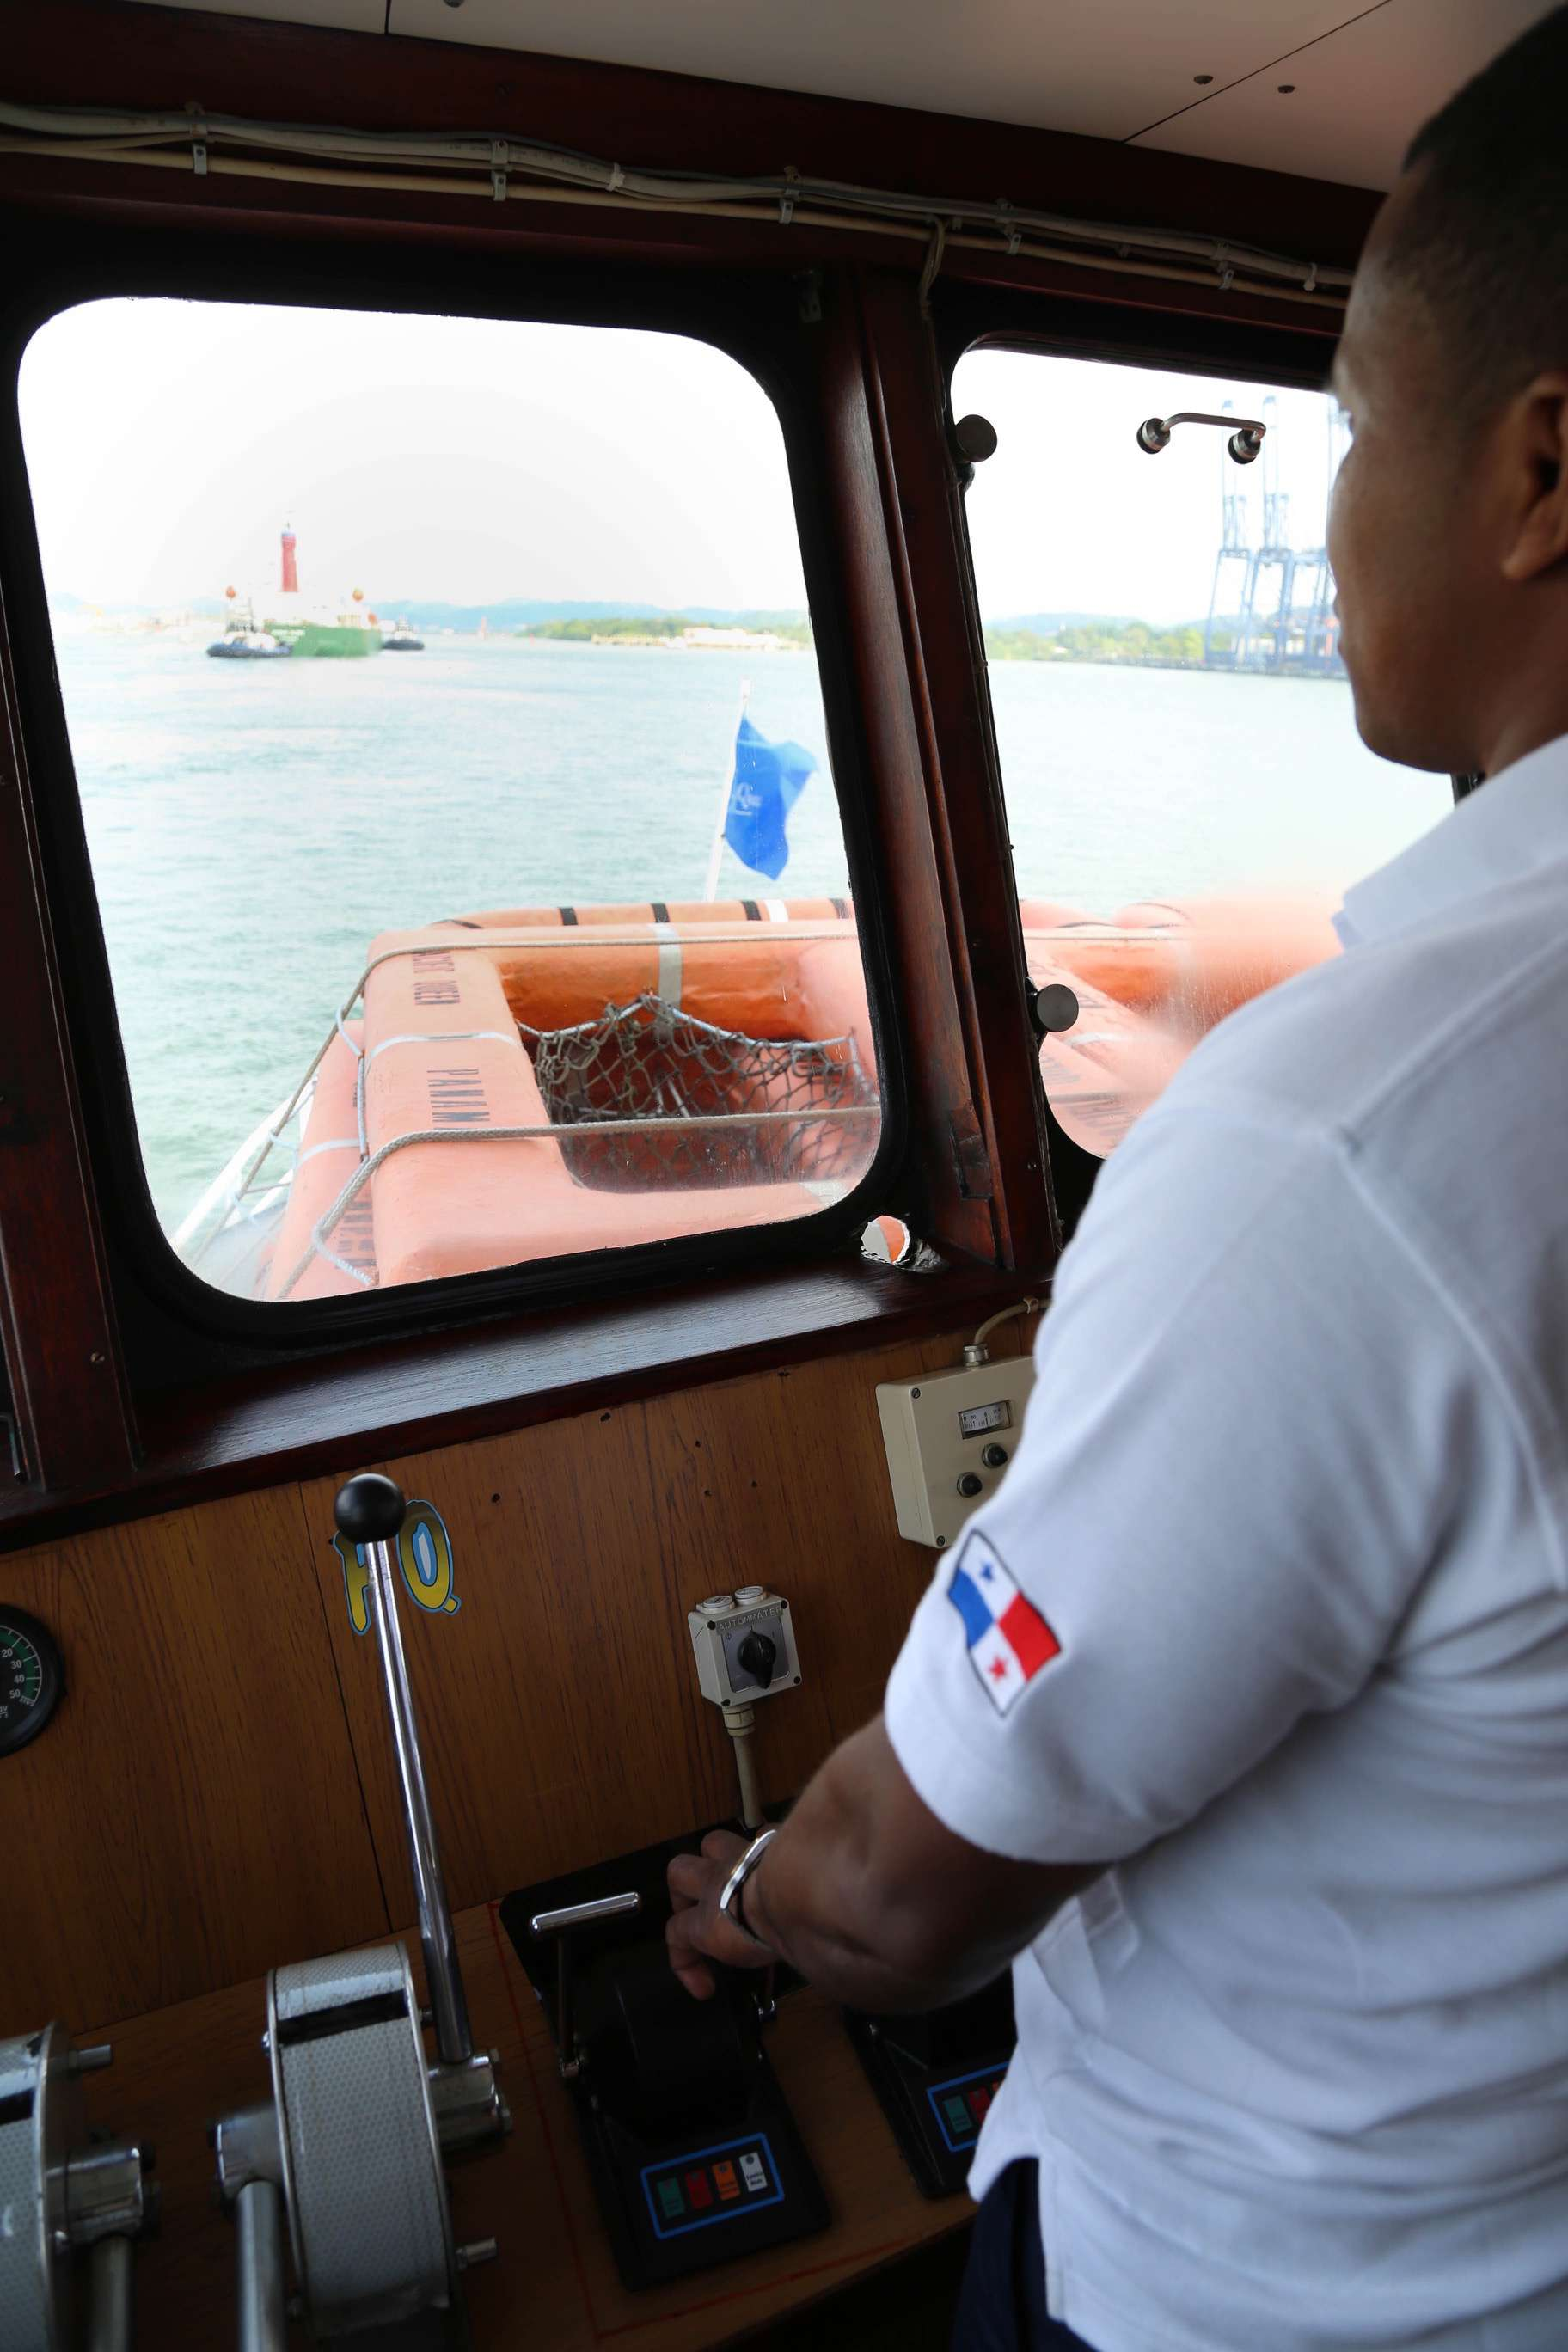 The captain carefully guides his ship along the Panama Canal while the canal pilot watches from a station in the wheelhouse.